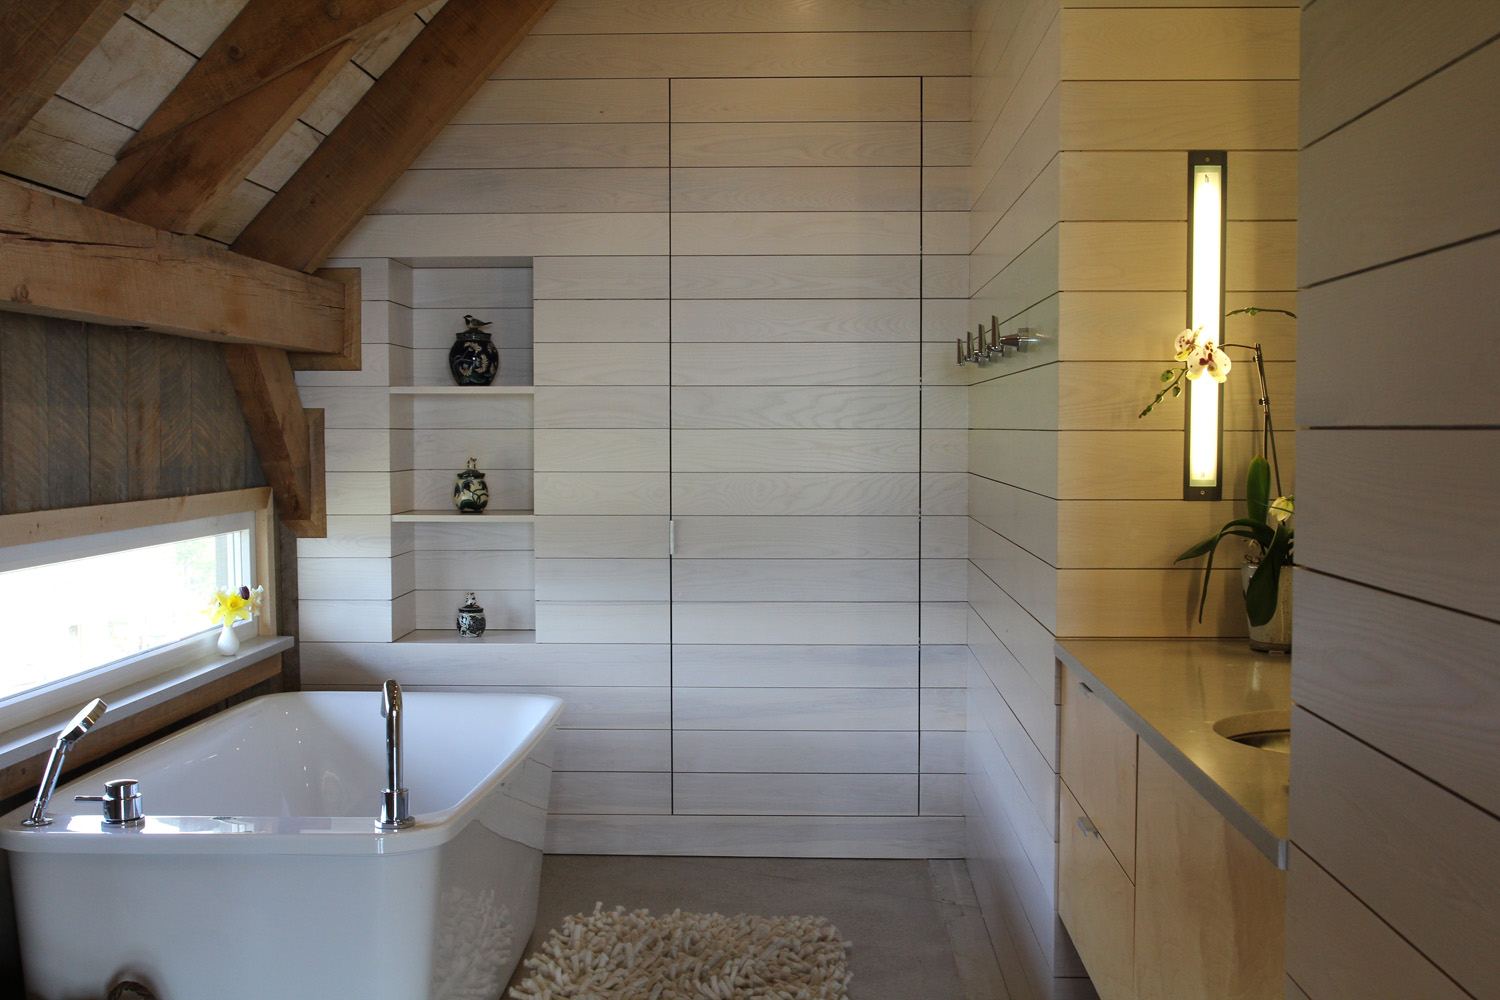 houdinidesign_ARCHITECTS_Ritchie-Gidney_Residence_Sandy-Cove_Digby_Acadian_Timber_Frame_Renovation_Modern_Bathroom.jpg